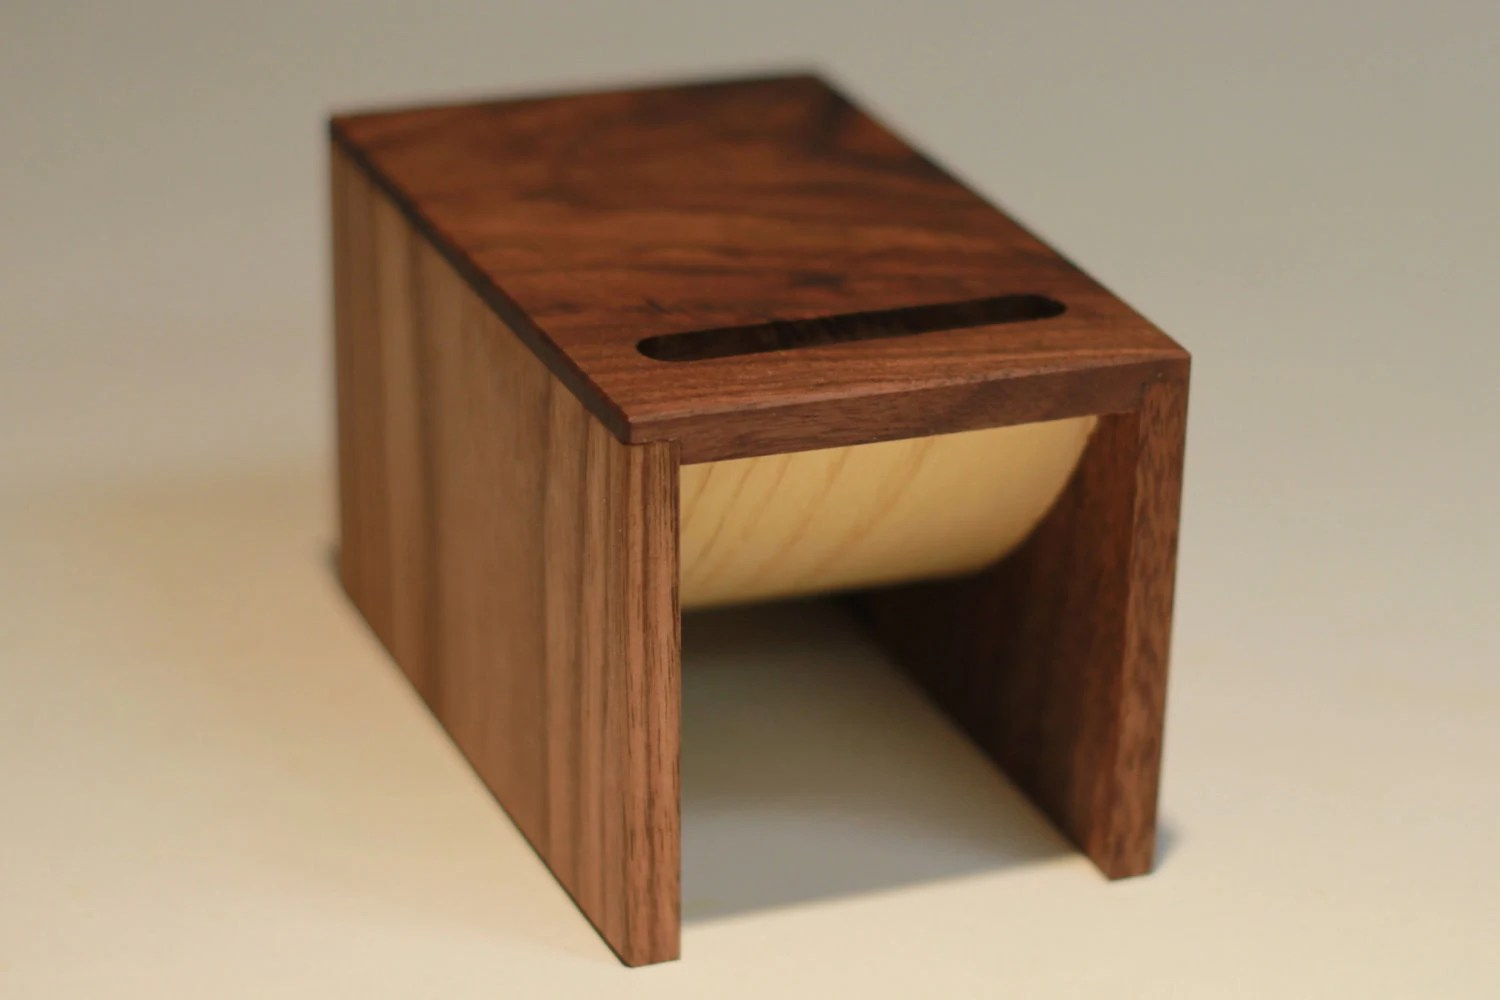 the BOOST      unplugged     wood iPhone or iPod amplifier